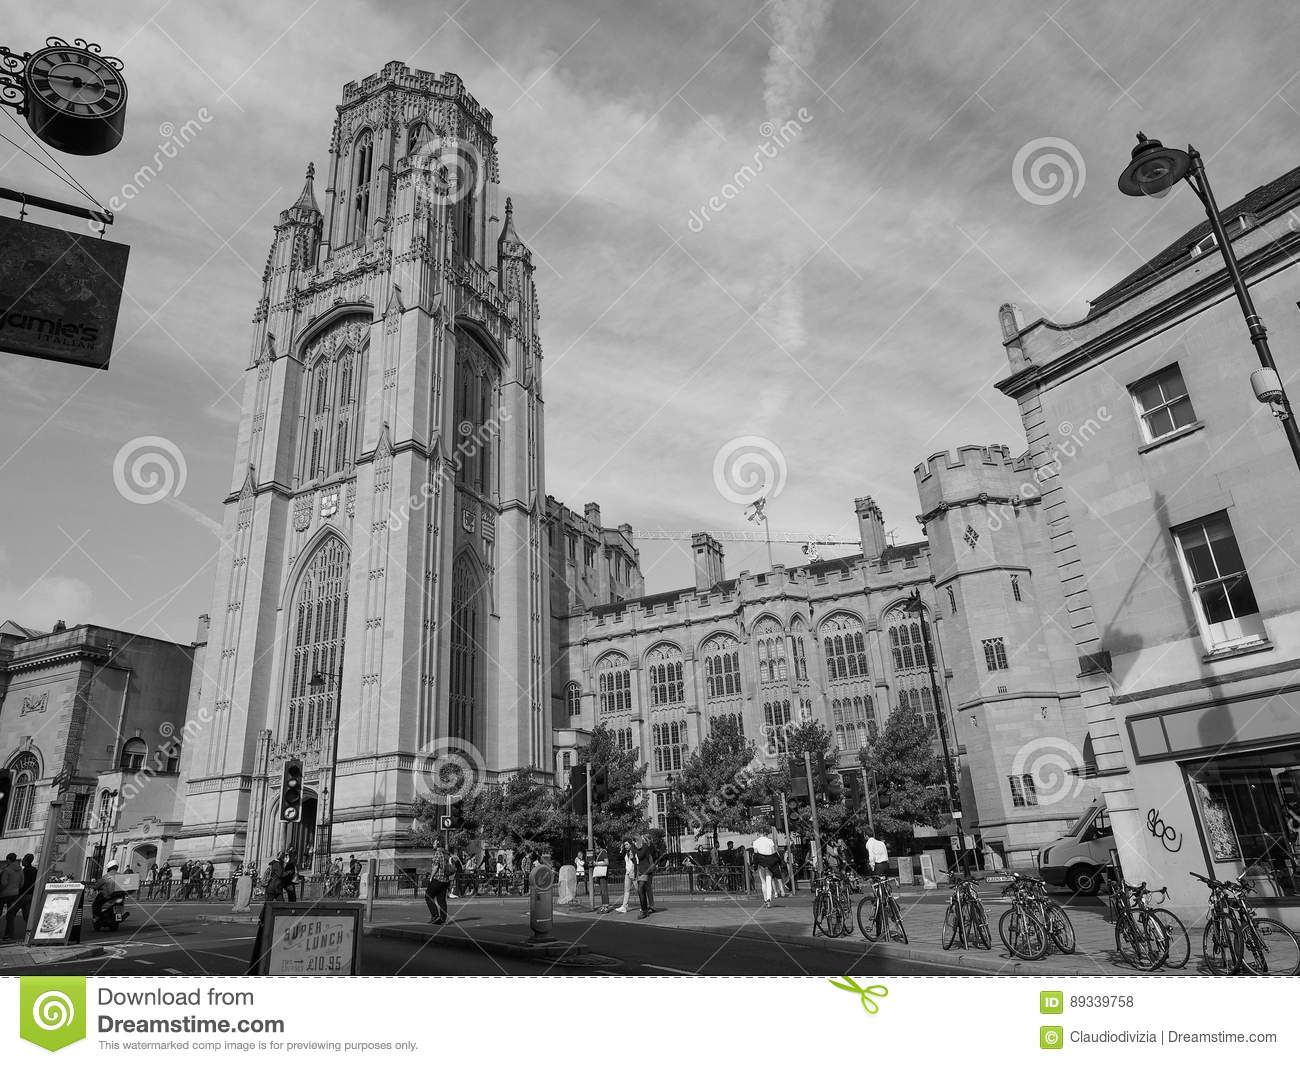 Bristol University Wills Memorial i Bristol i svartvitt